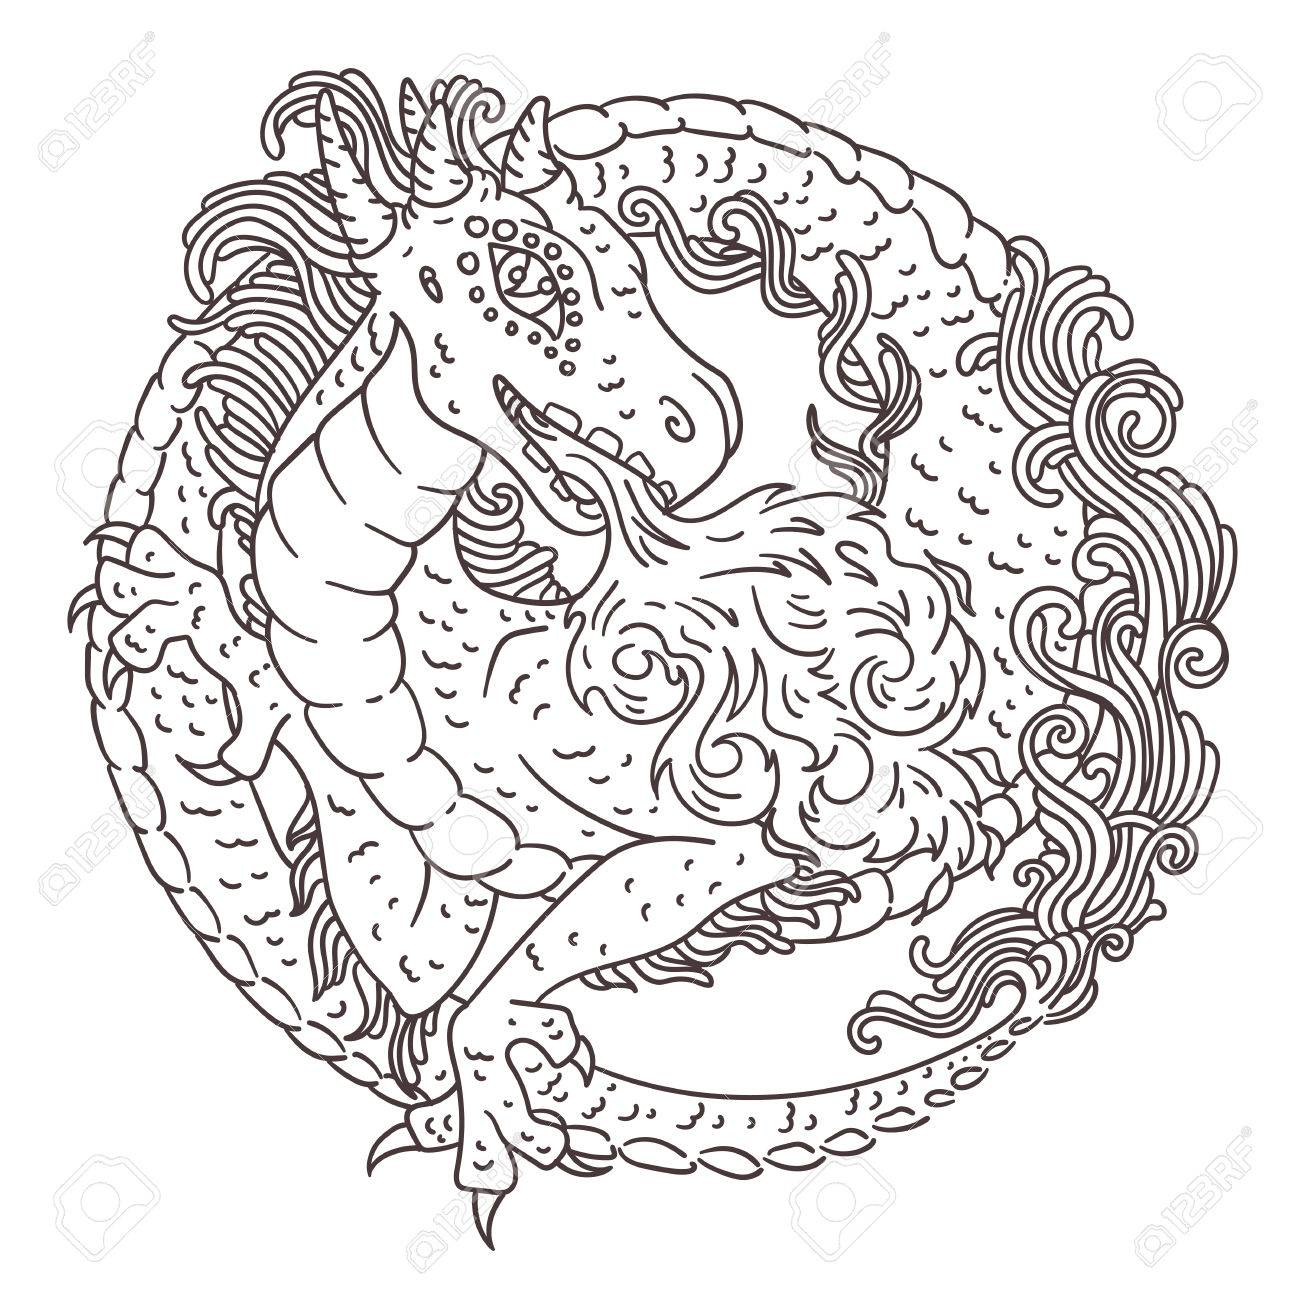 Vector illustration of chinese, european or japanese dragon with